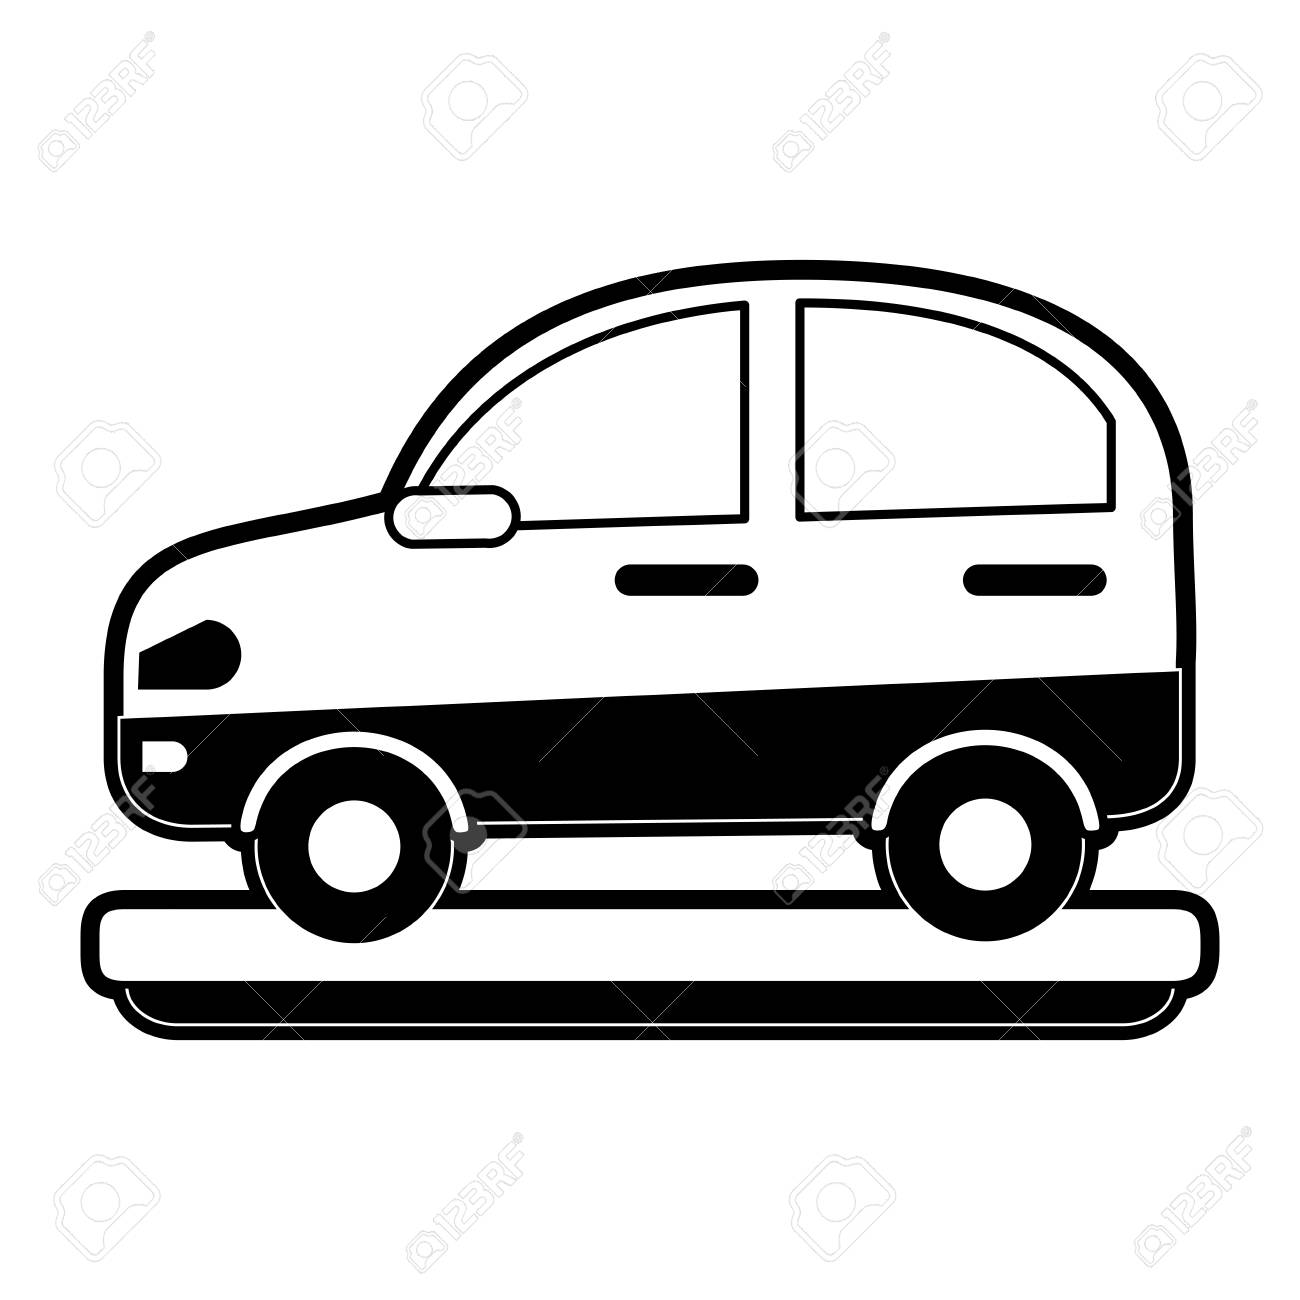 Car side view icon.